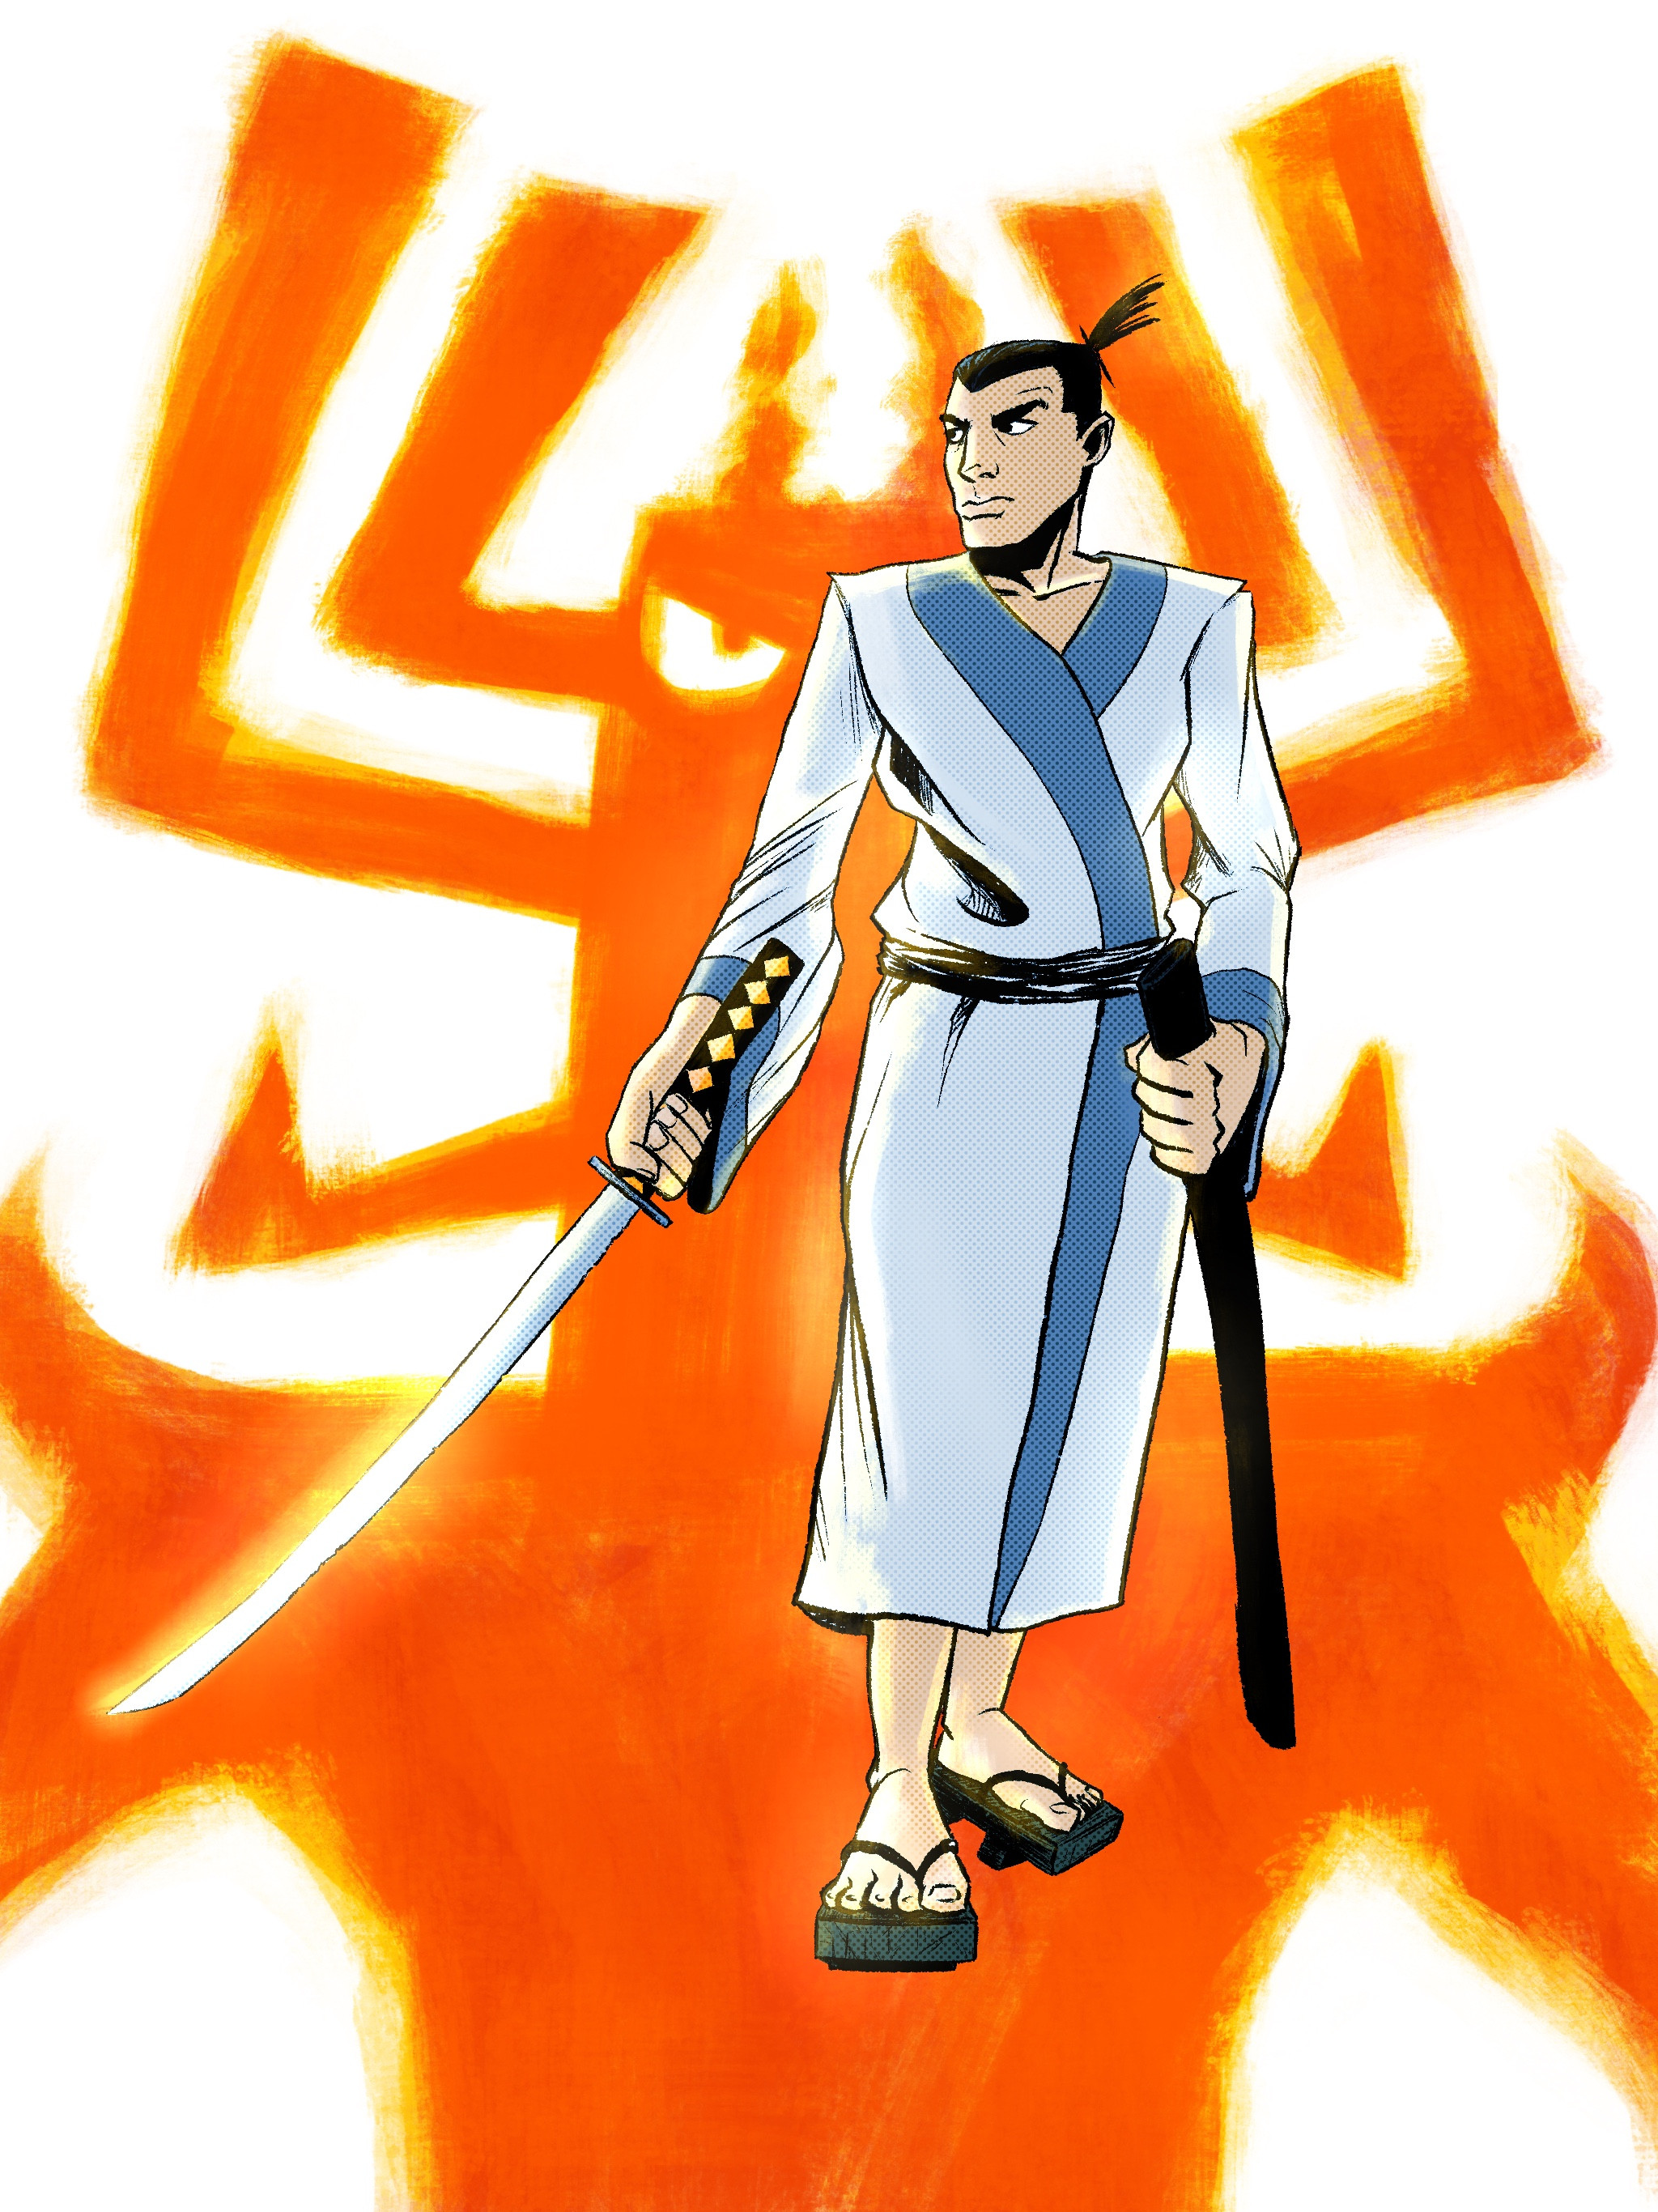 Samurai Jack - Digital in Procreate